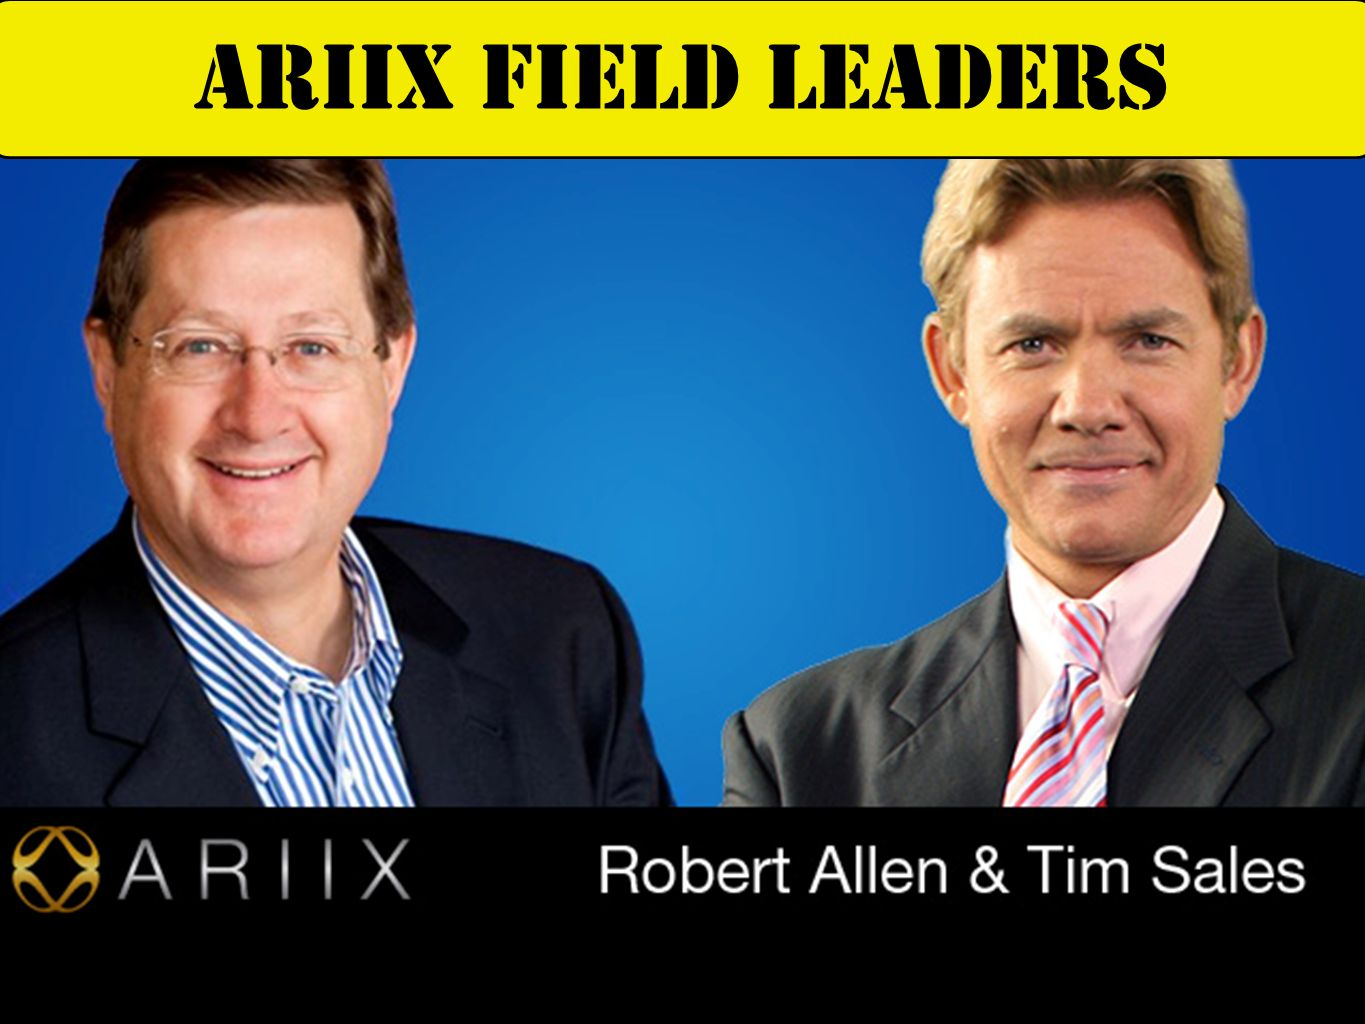 Deanna Latson Chief product officer Dr. Ray Strand Chief Medical Advisor ARIIX NUTRITION EXPERTS